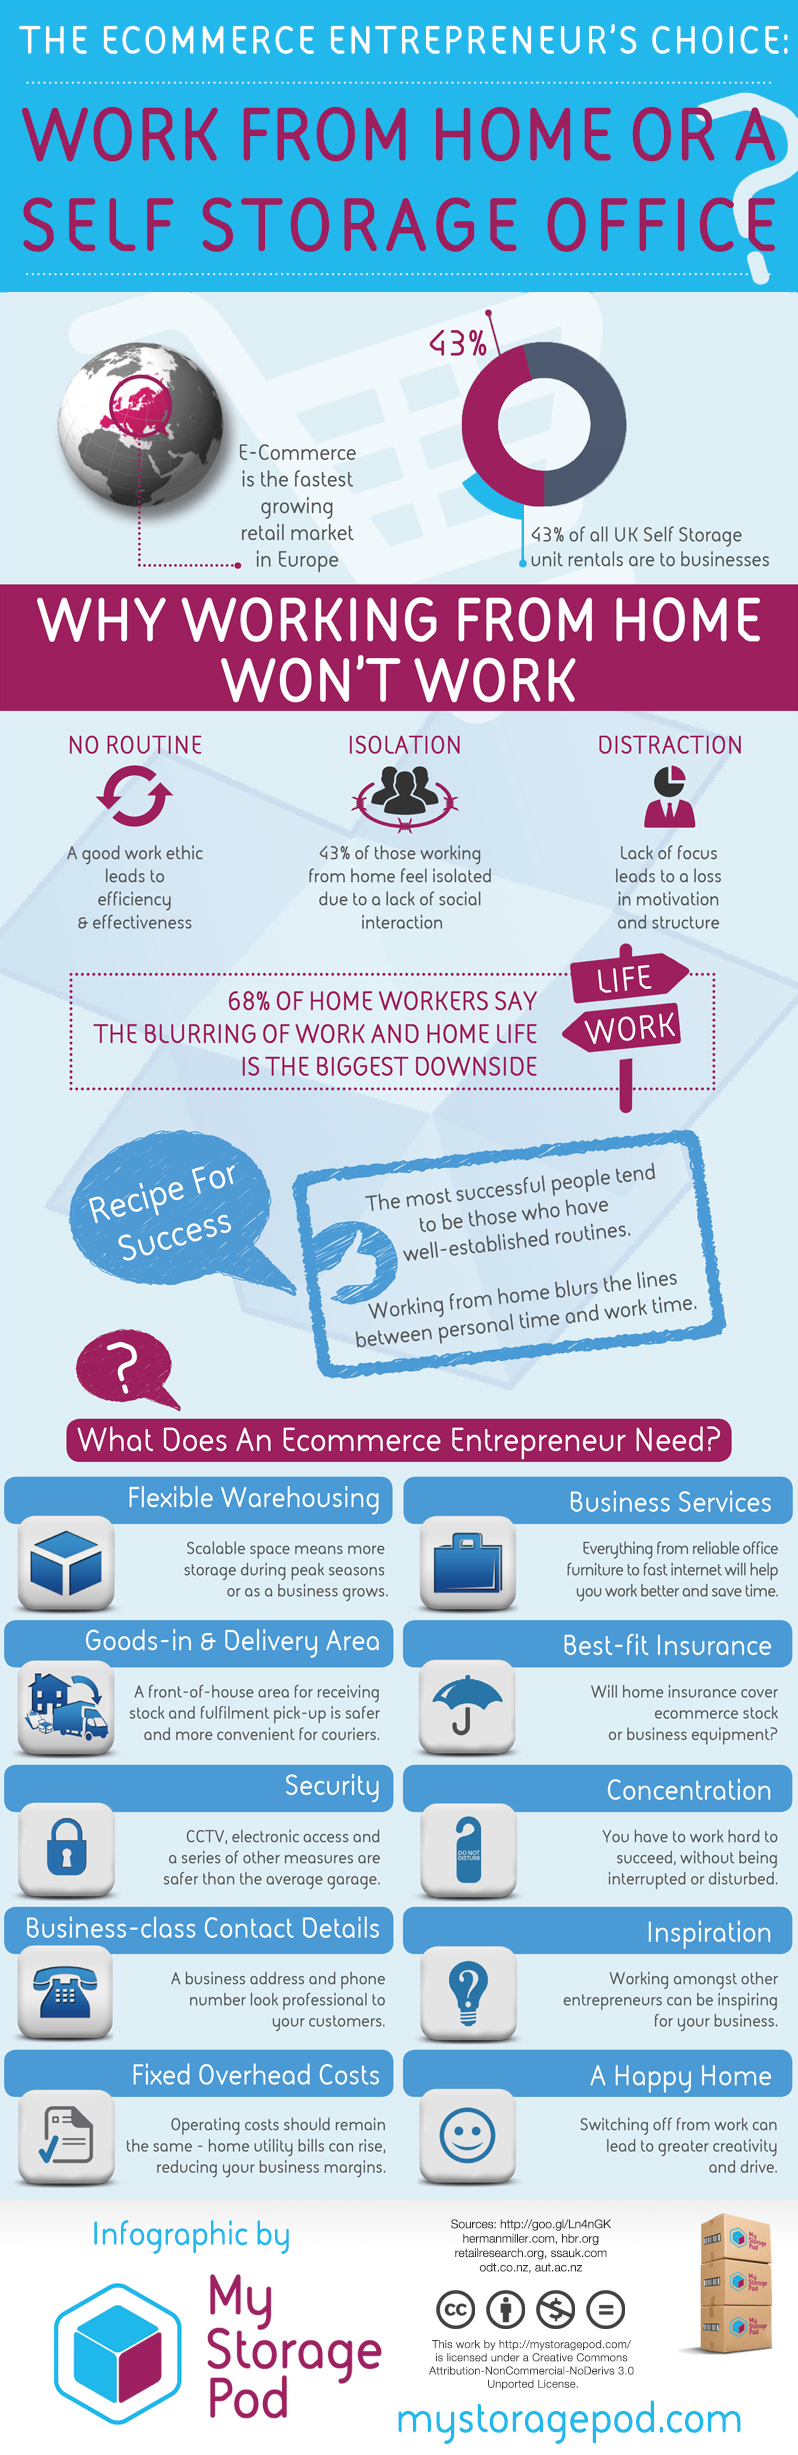 The Ecommerce Entrepreneur's Choice: Work from home or a self storage office?